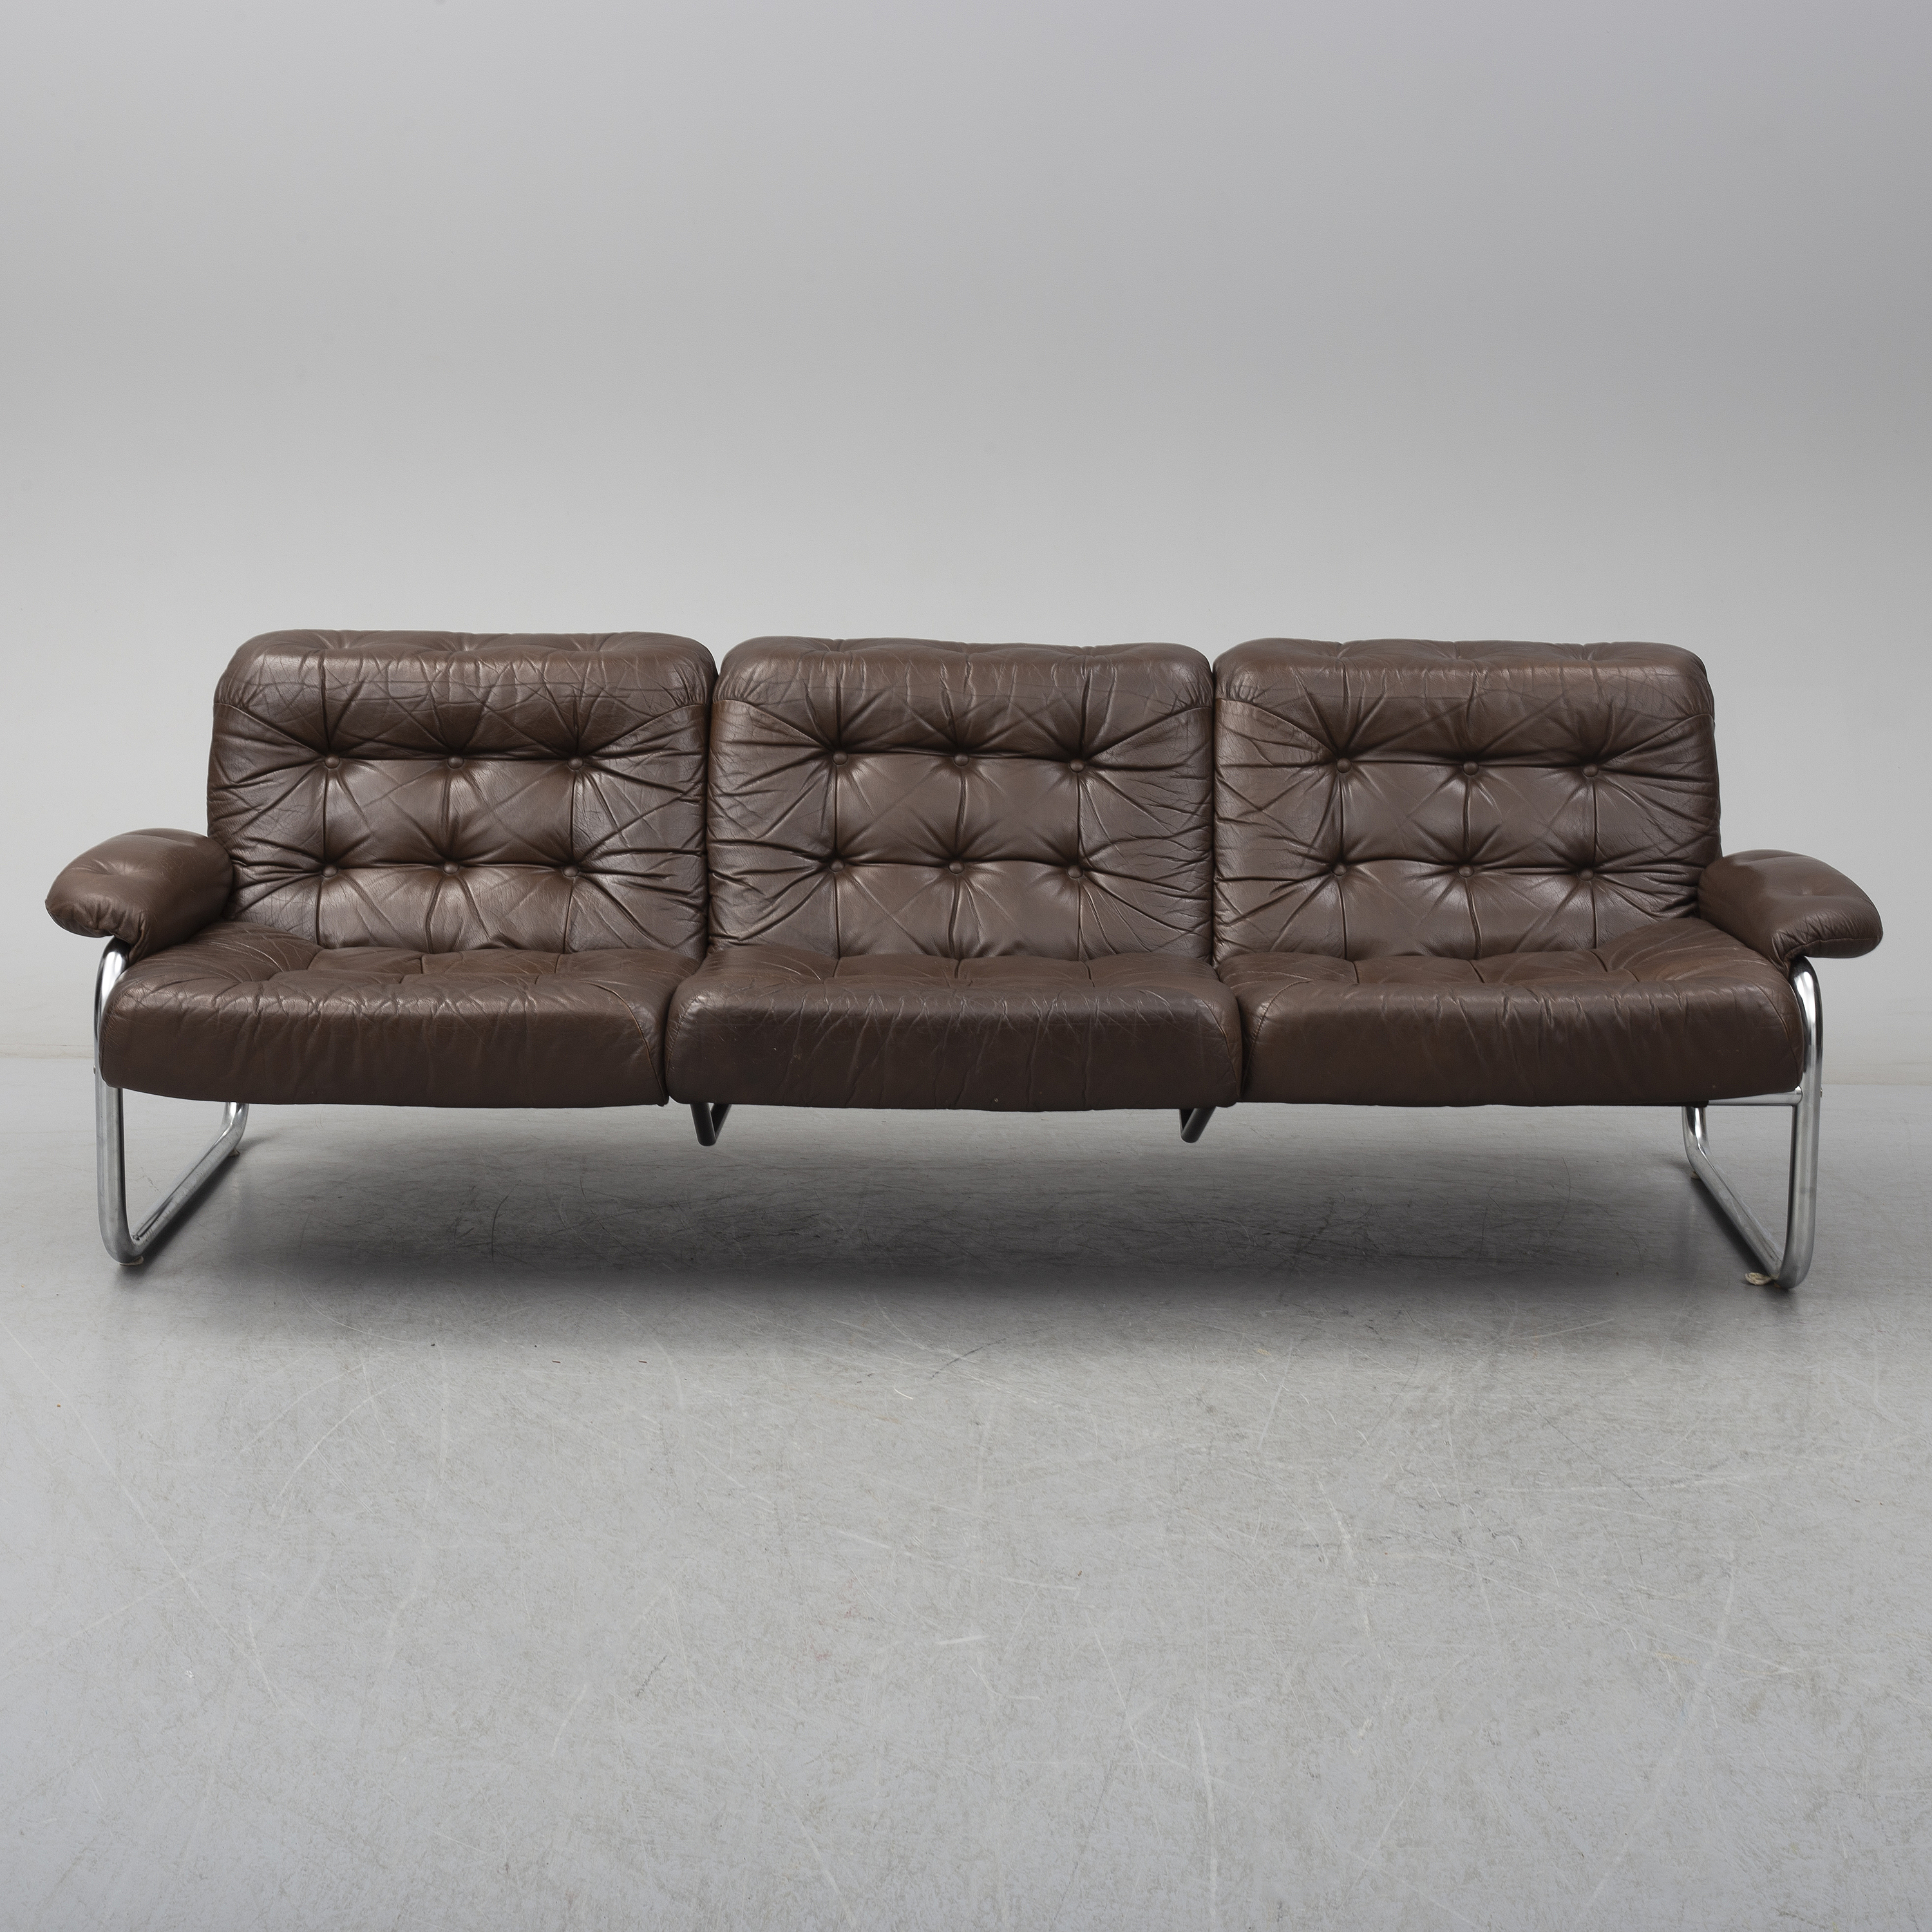 - A Leather Upholstered IKEA Sofa, 1960's/70's. - Bukowskis